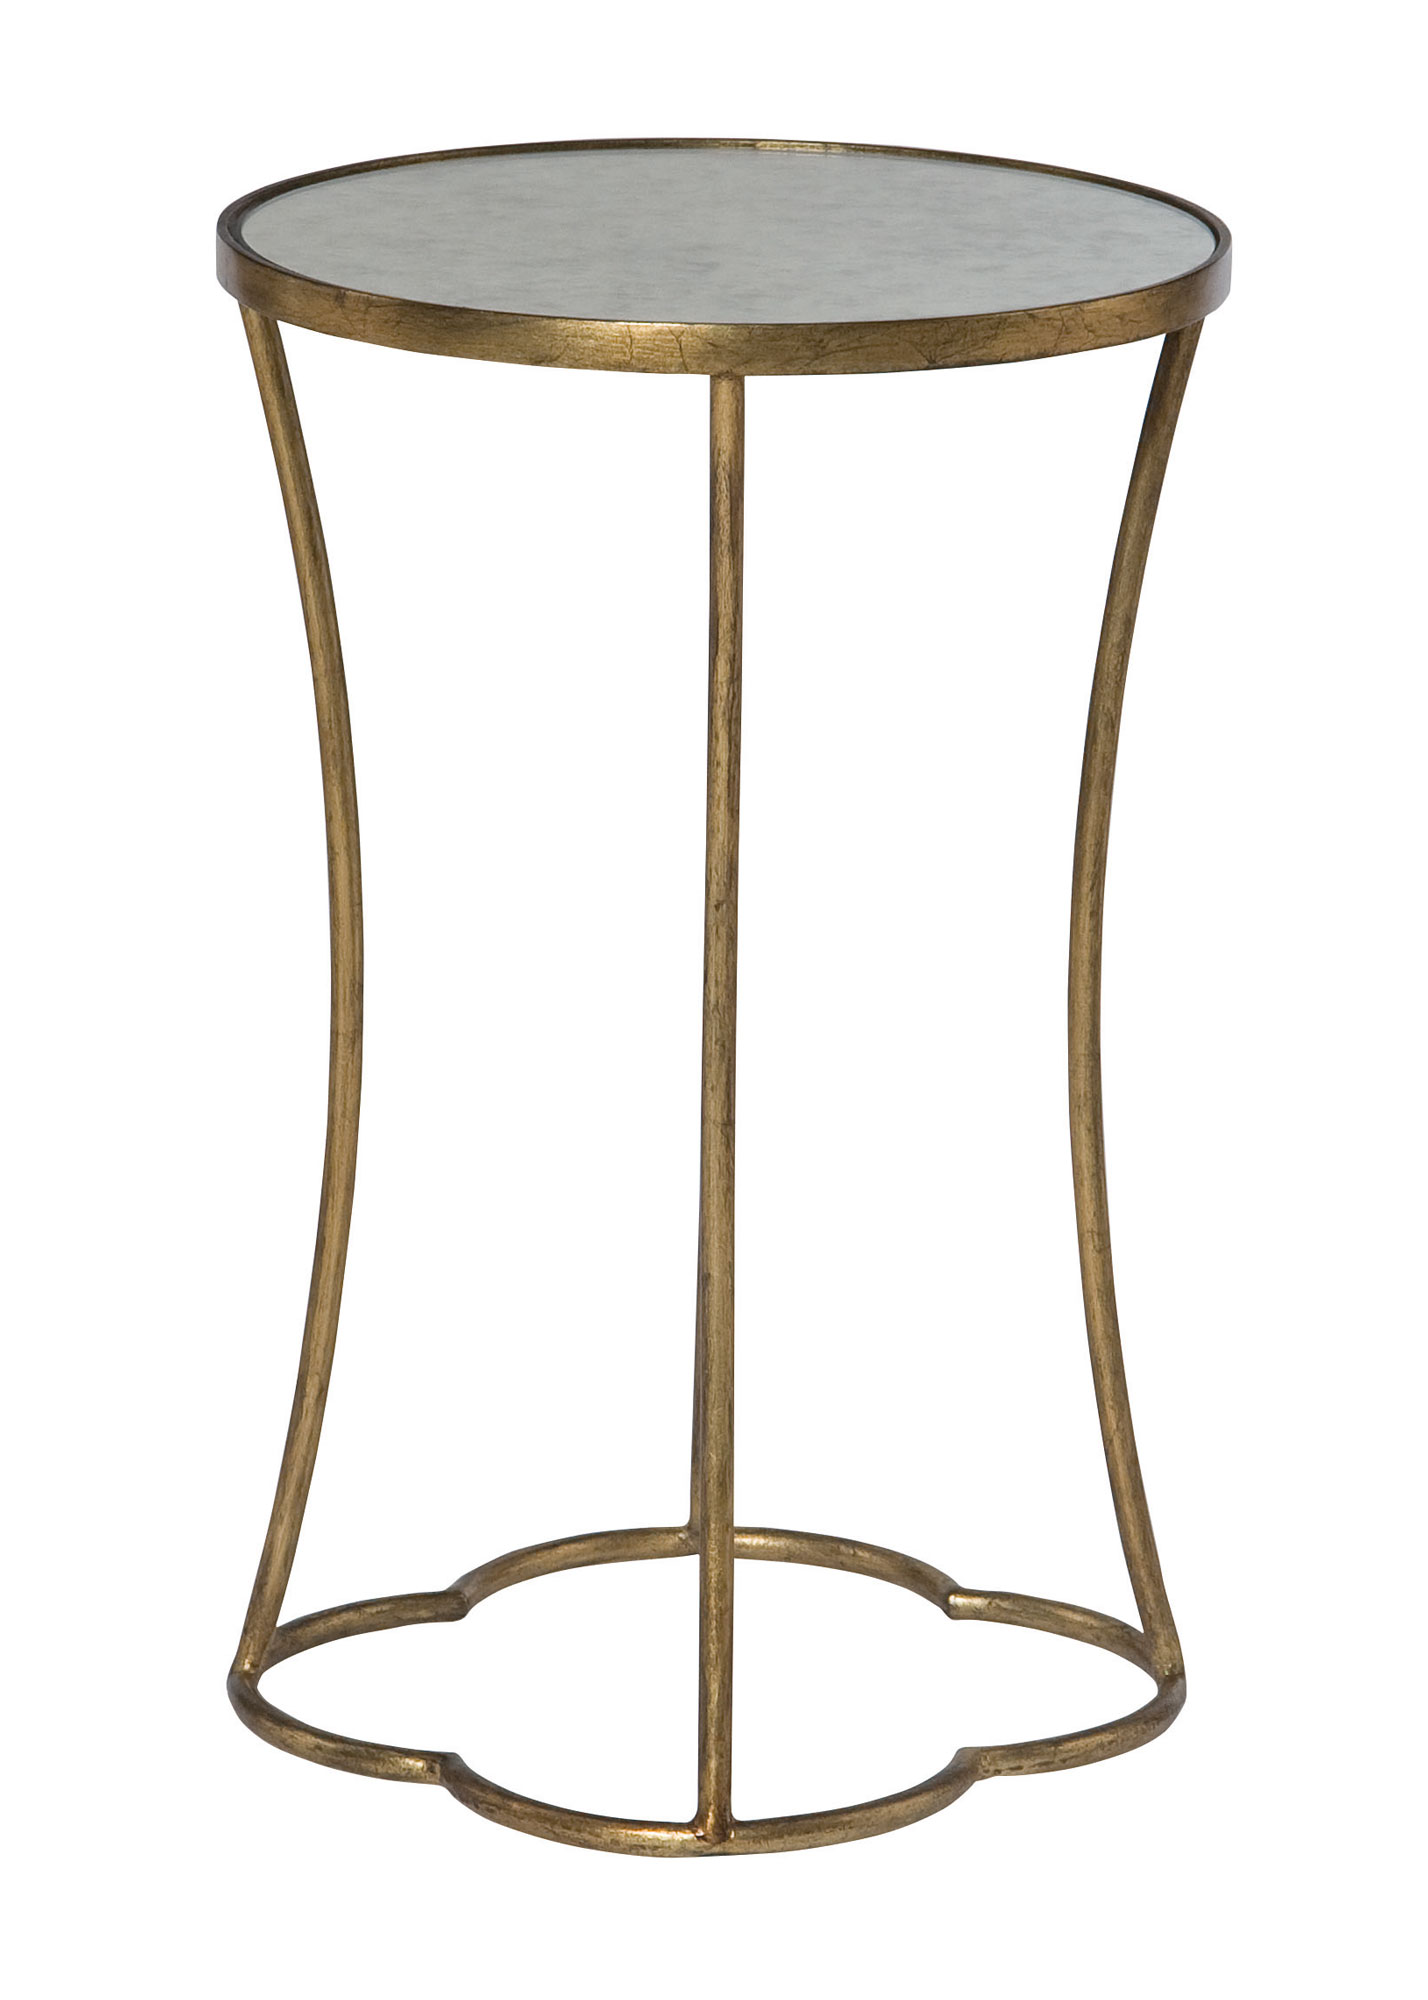 round accent table bernhardt gold mirrored weber grill side dining linens plastic garden furniture sets french beds large white coffee kitchen for long skinny unusual tables ikea